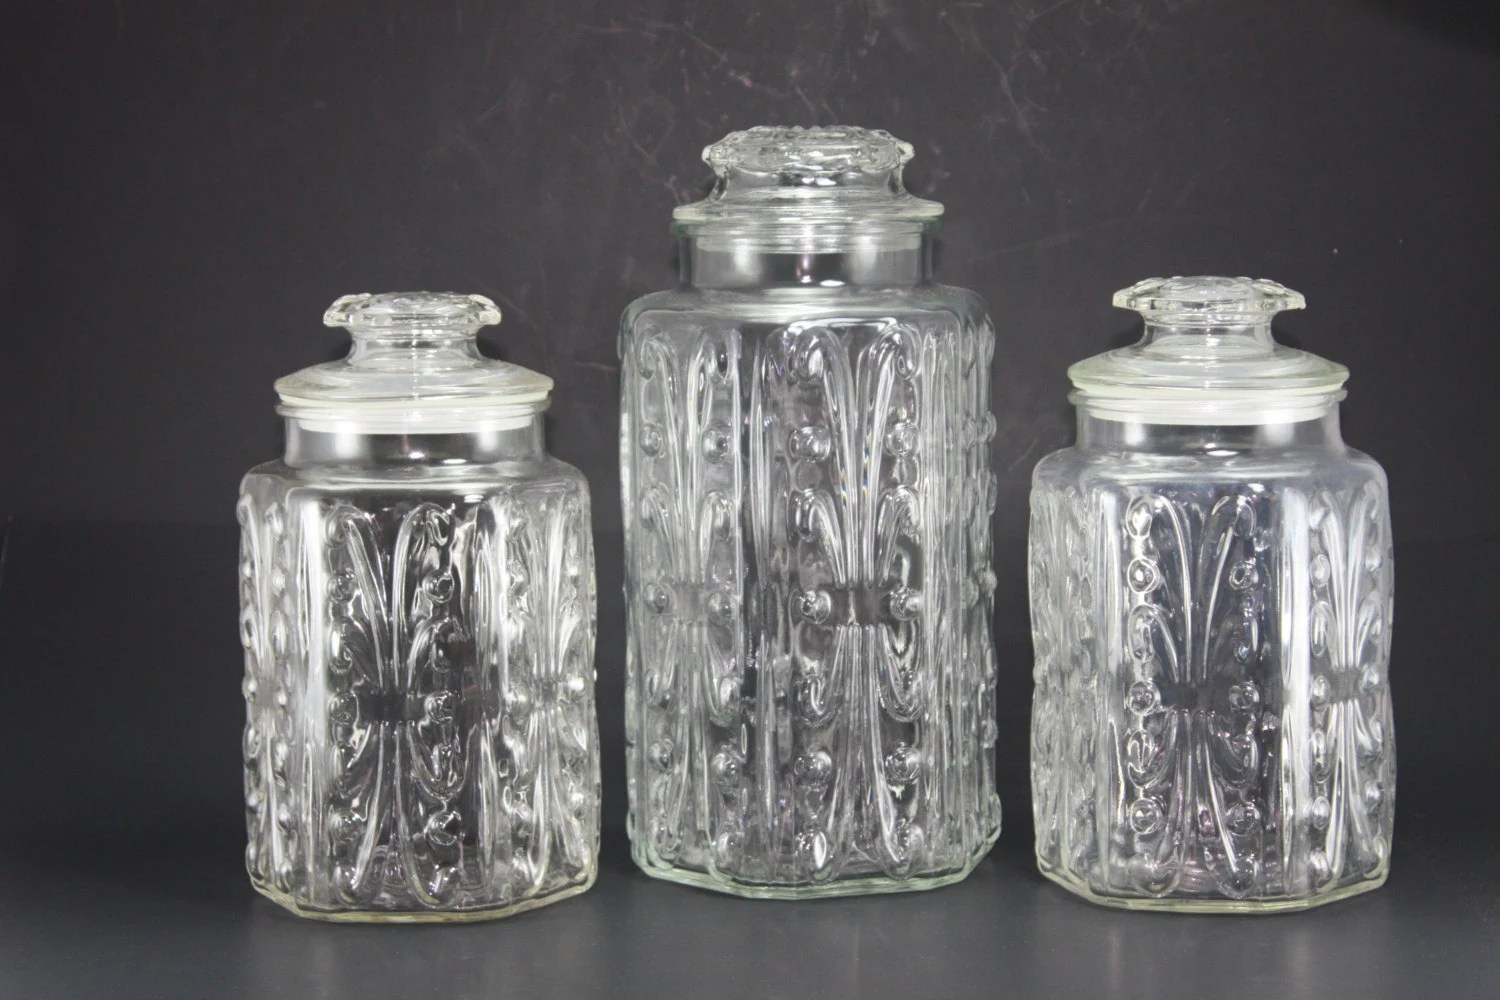 clear kitchen canisters ways to redo cabinets vintage glass canister decorative embossed jars set of